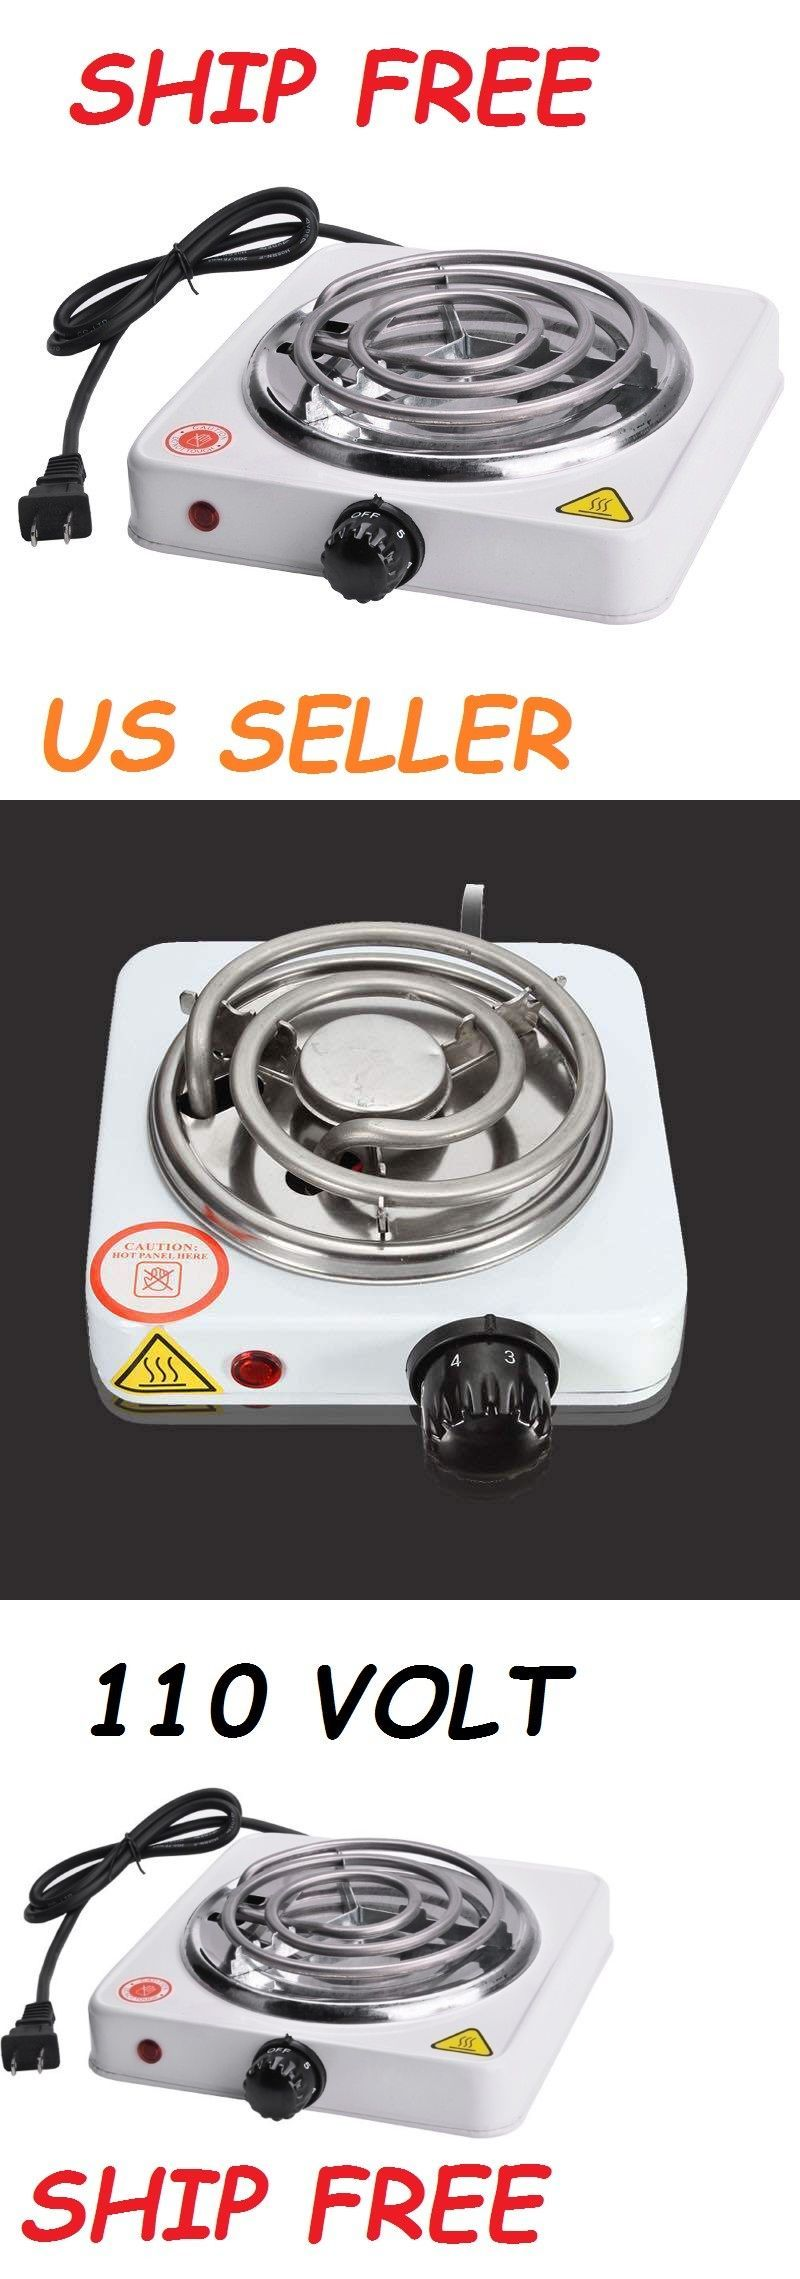 Burners And Hot Plates 177751 Portable Single Electric Burner Hot Plate Stove Dorm Rv Travel Cook Counter Top Buy With Images Hot Plates Single Burner Stove Dorm Style